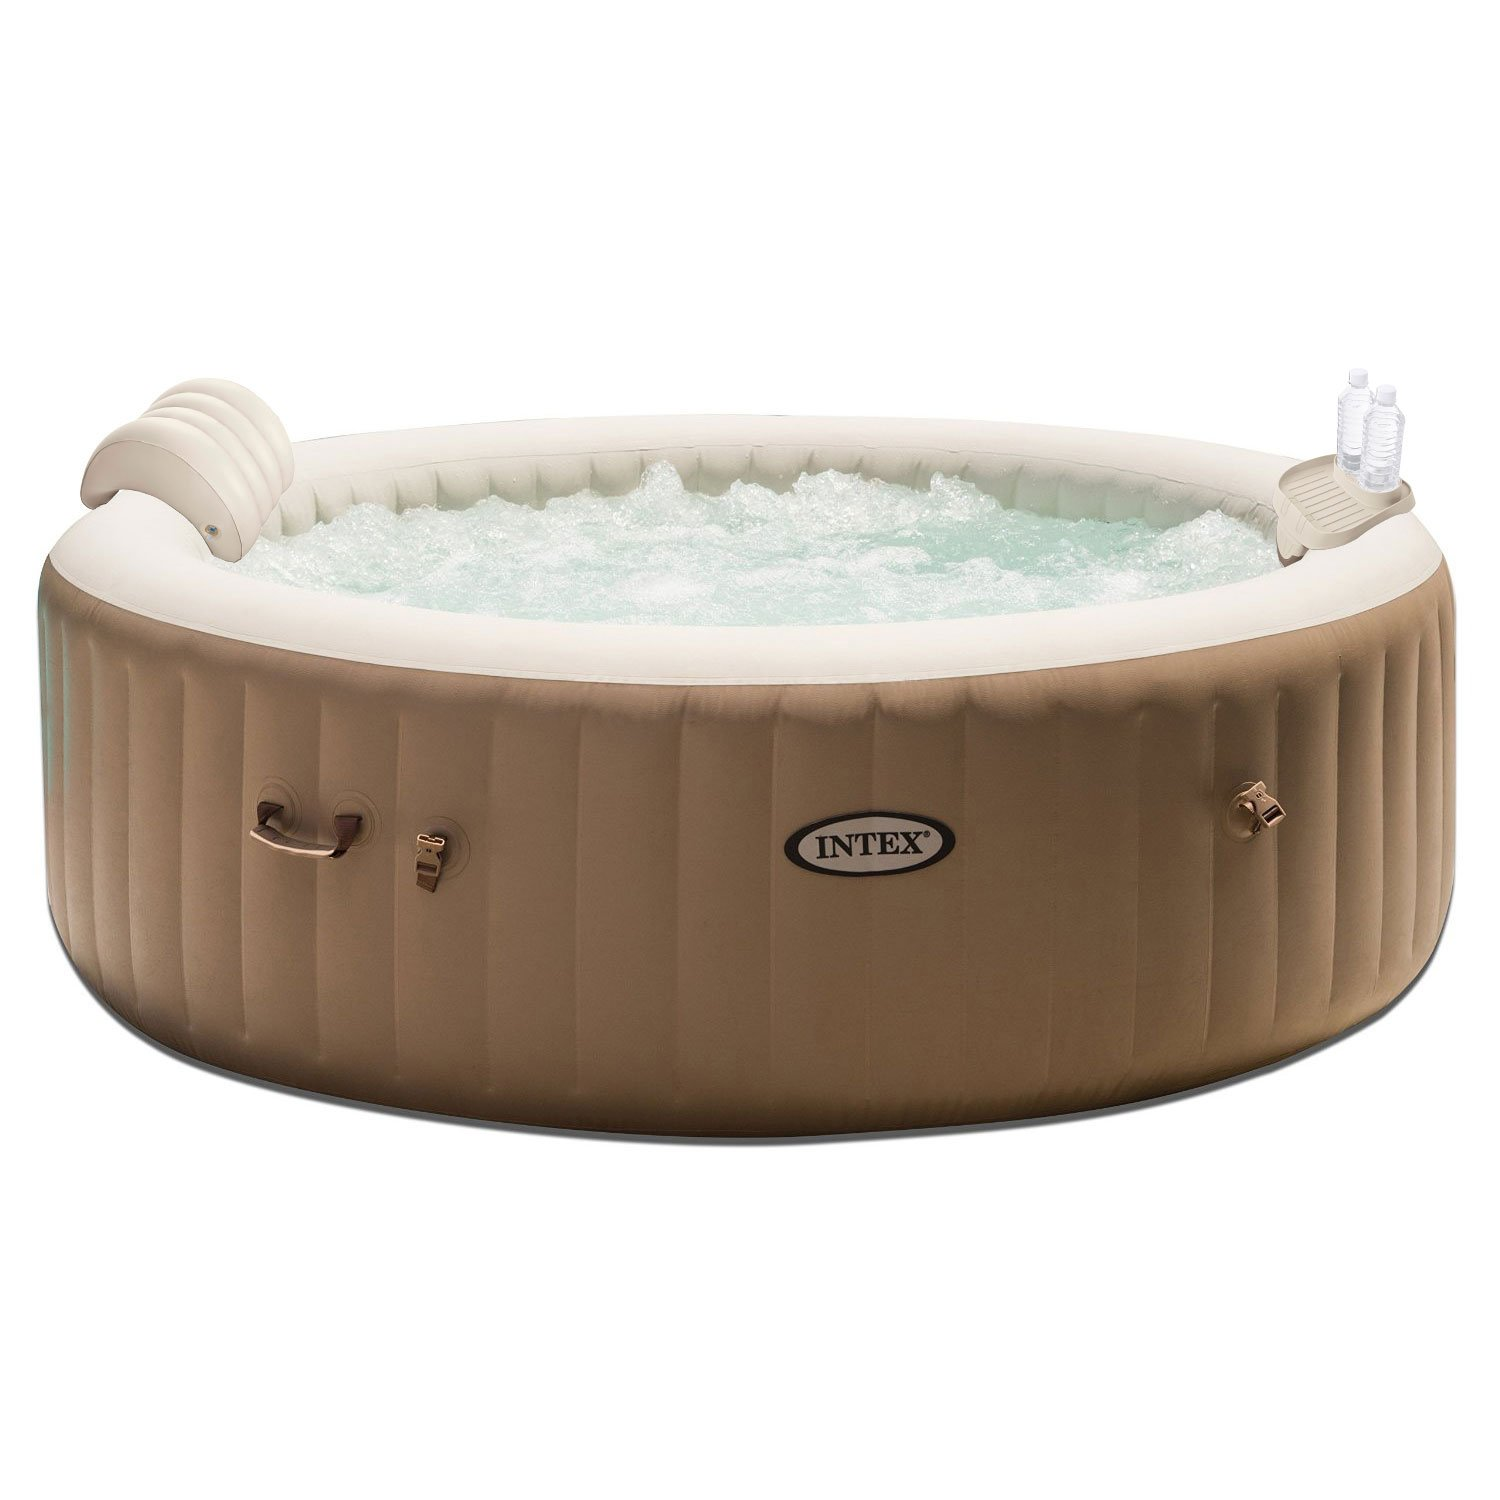 The Best Outdoor Hot Tubs For Your Garden: Reviews & Buying Guide 3